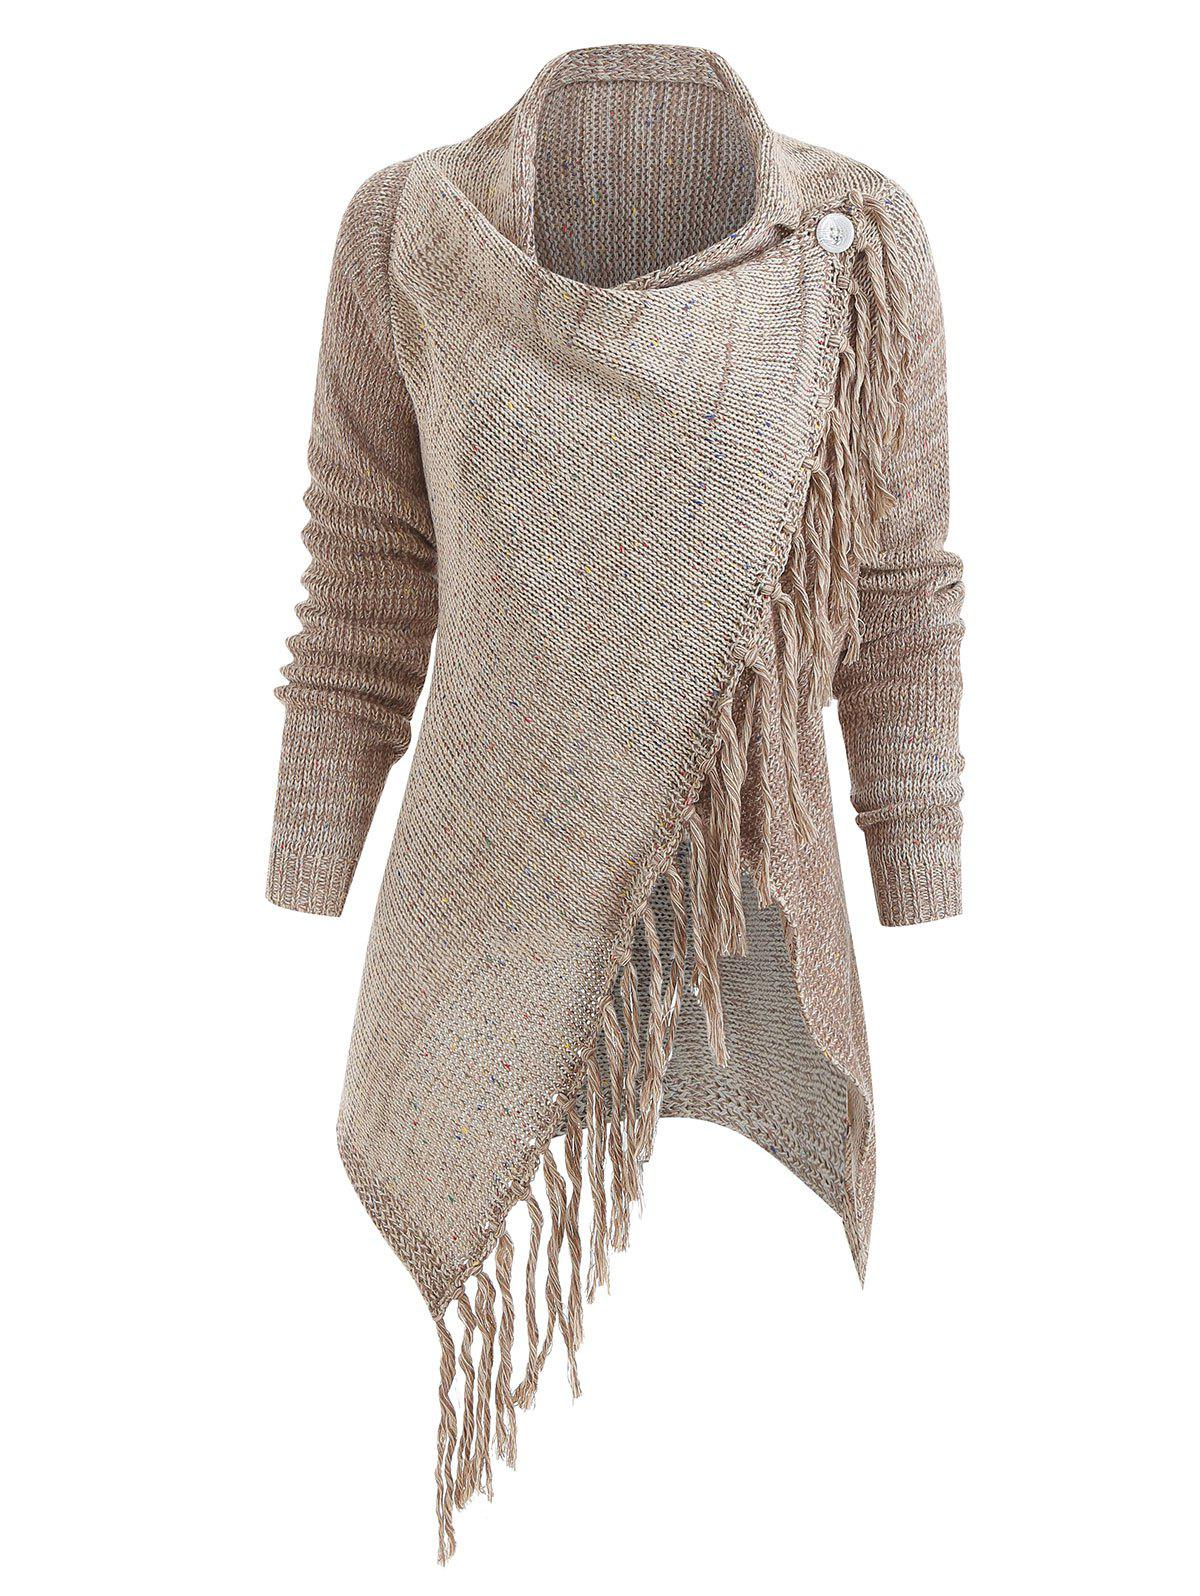 Asymmetrical Fringed Knitted Cardigan - LIGHT KHAKI L